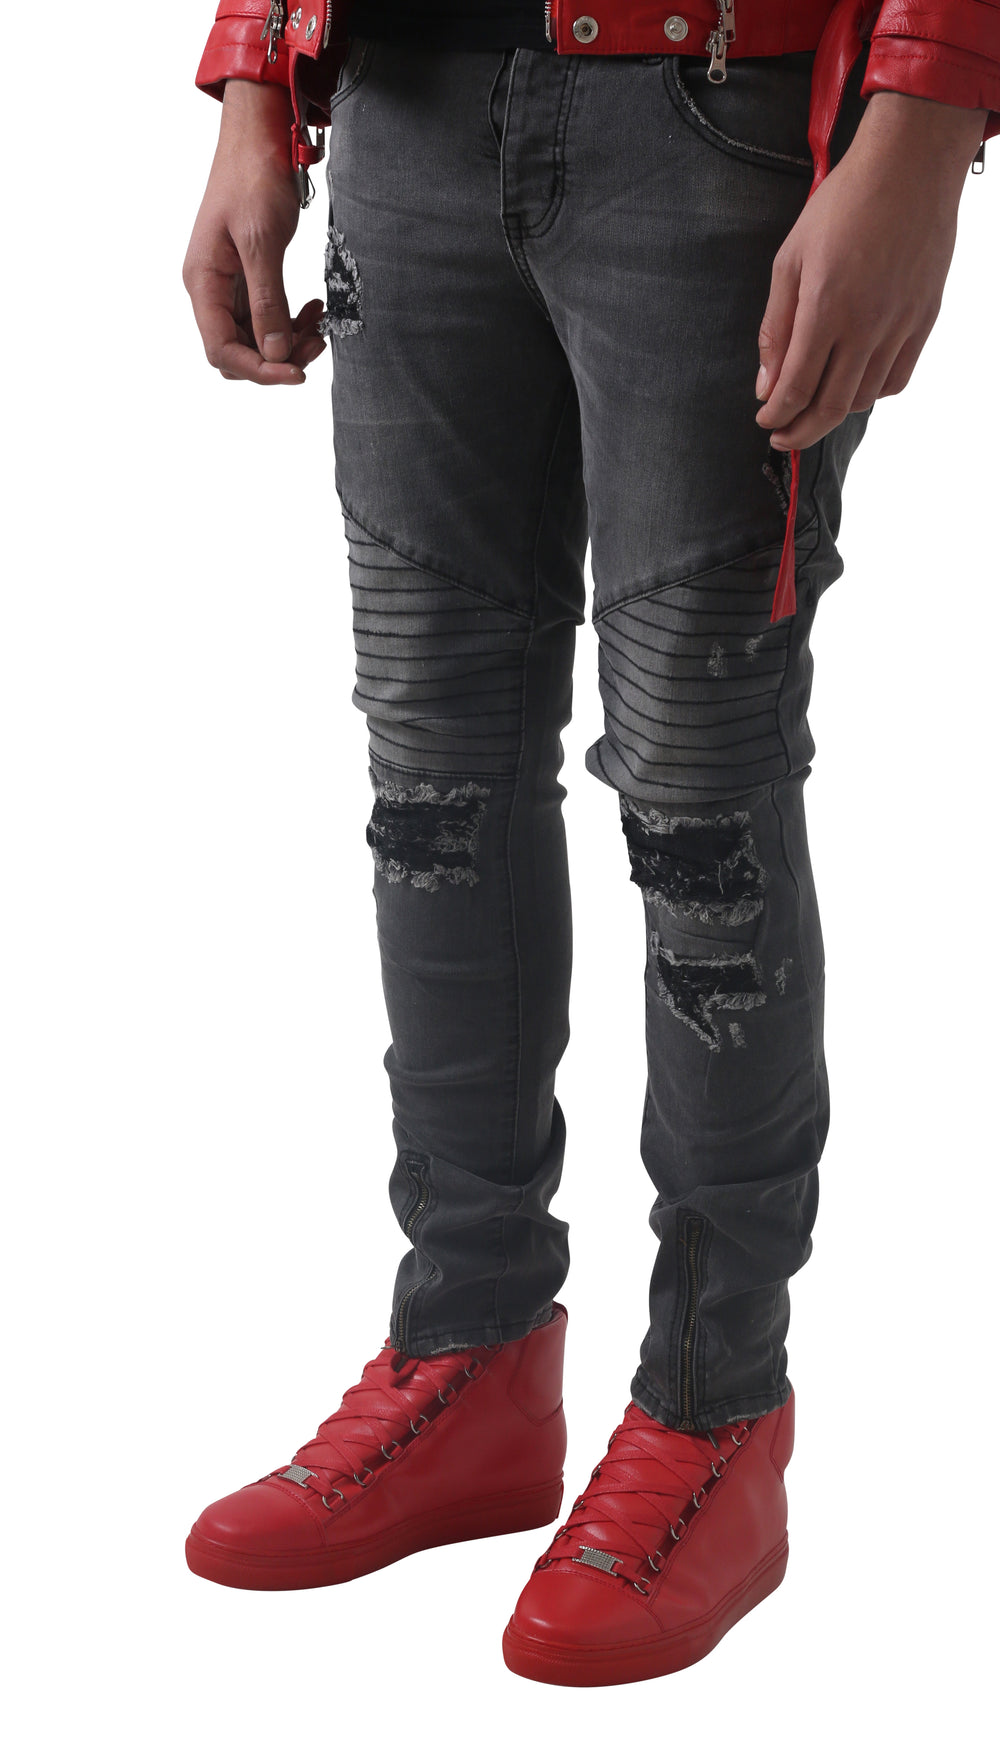 Grey Jane Black threaded Biker Jeans